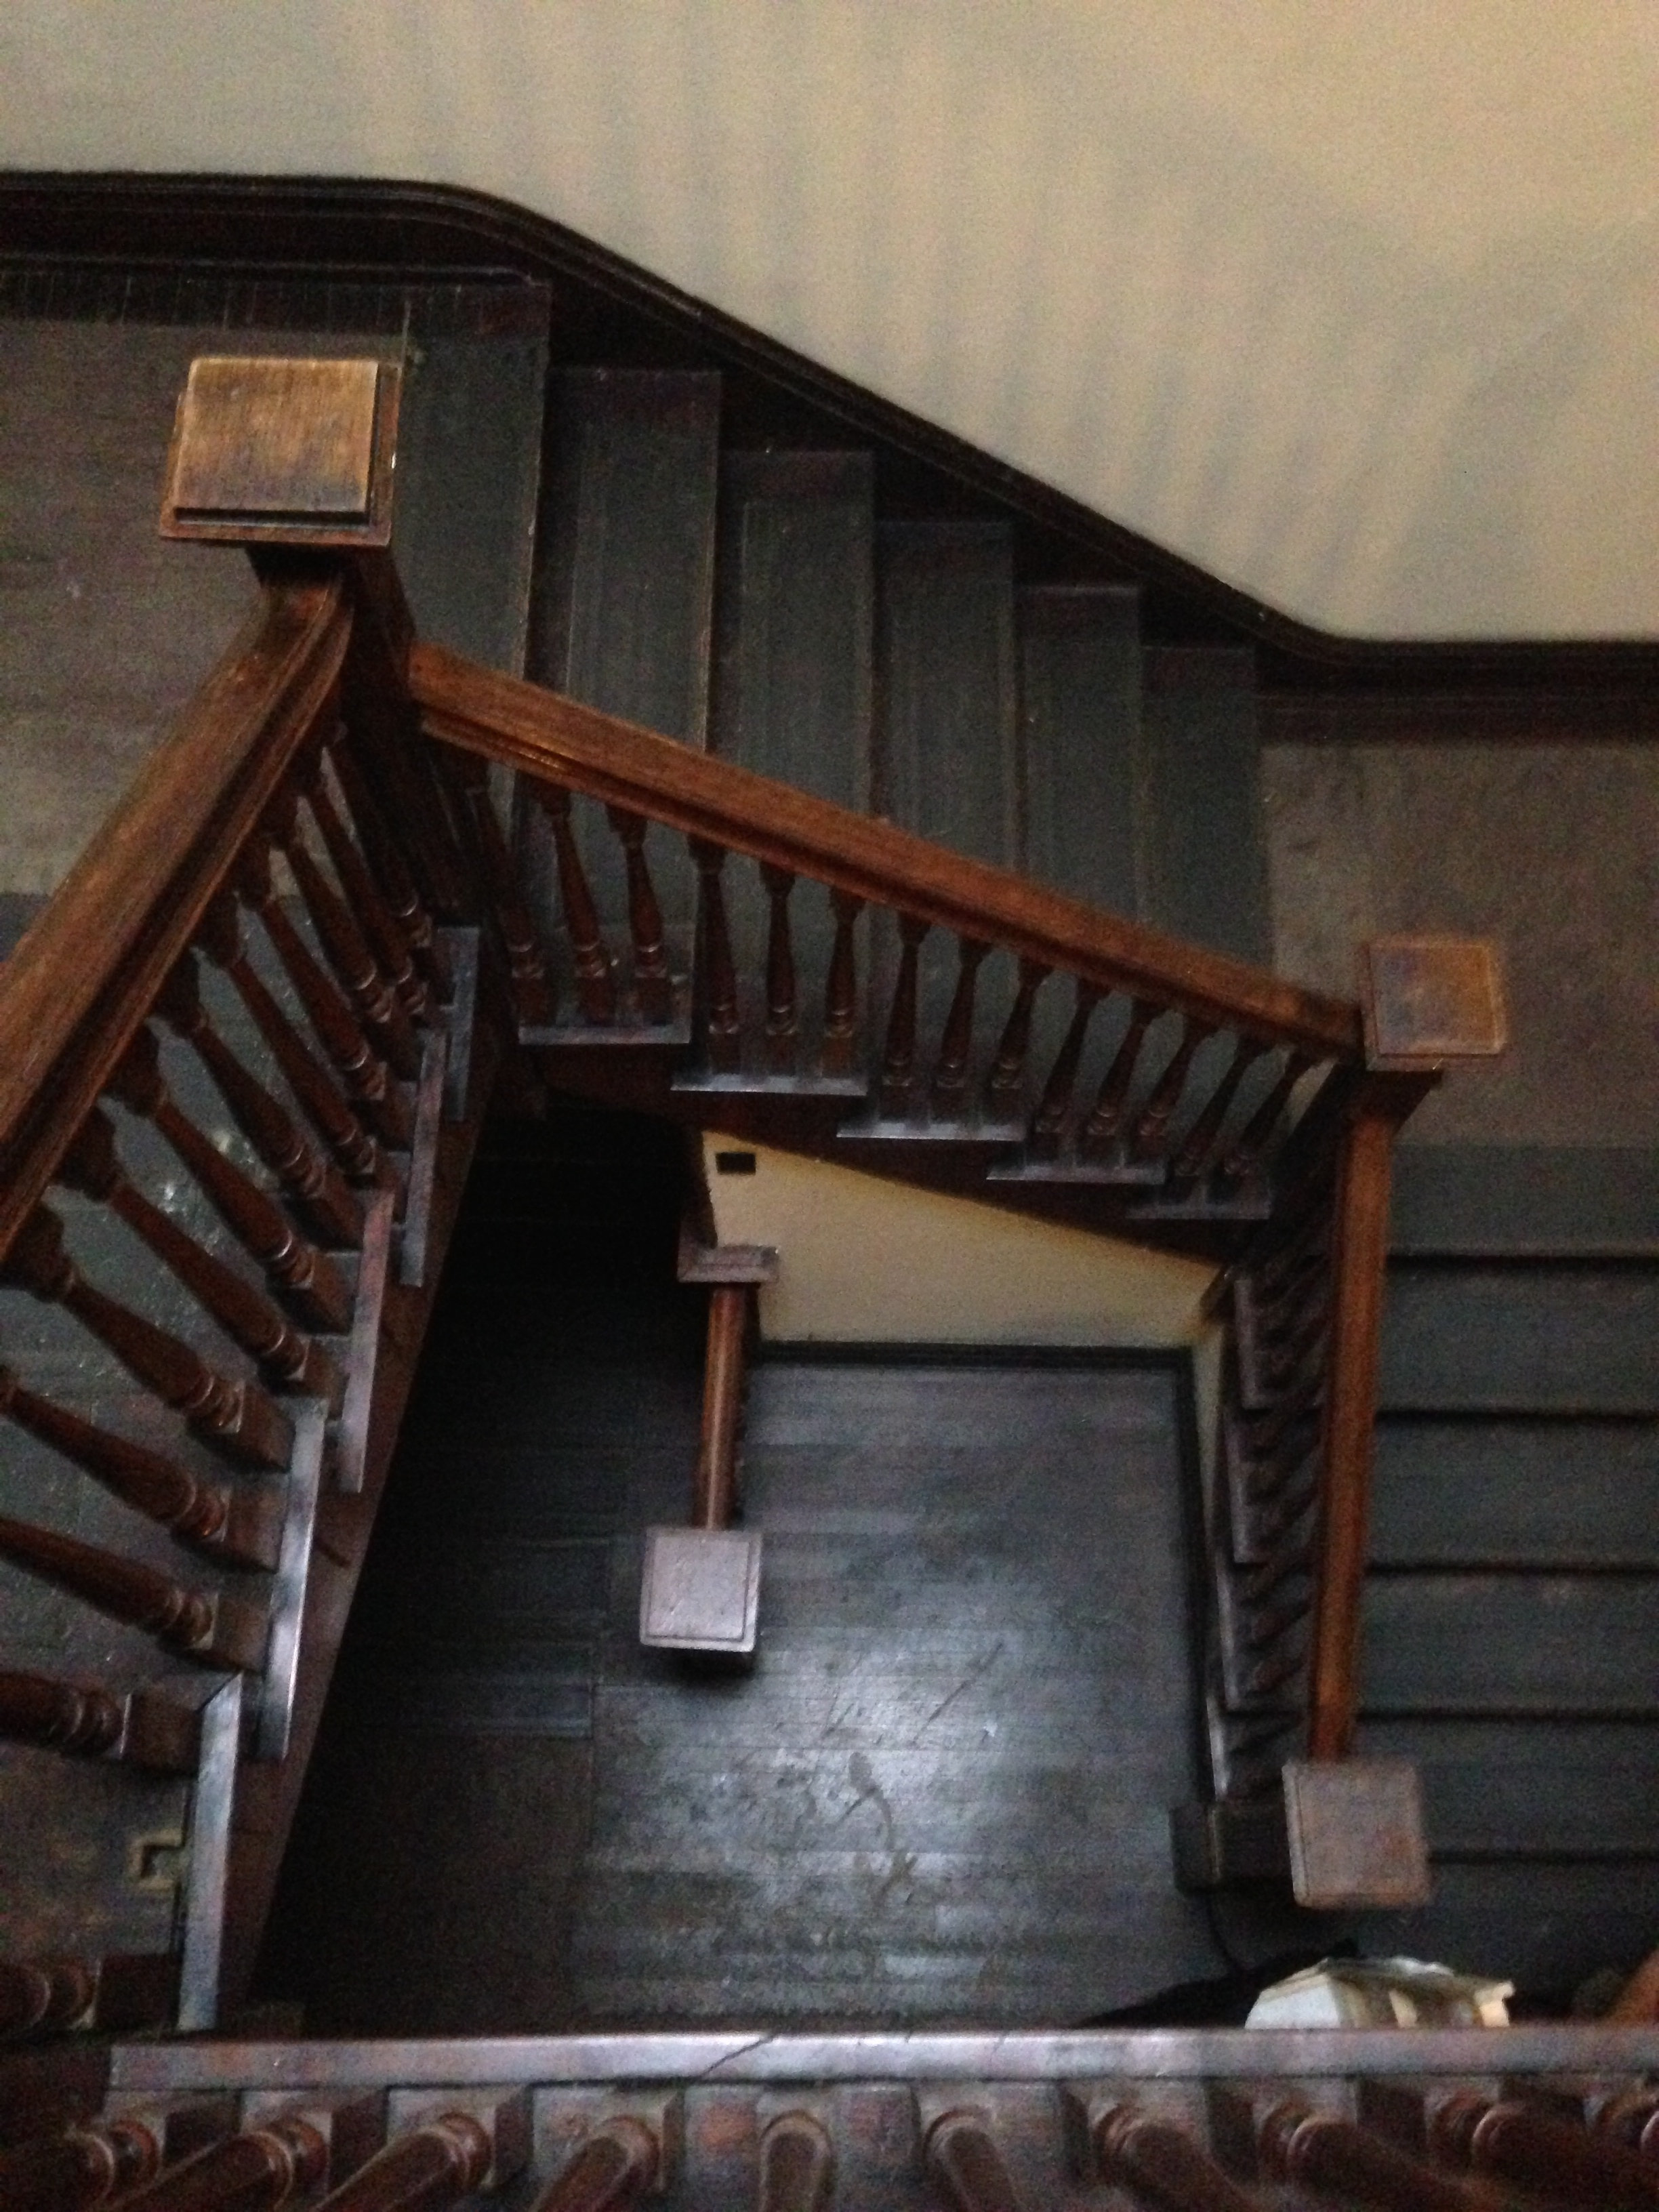 For some reason I thought it'd be a good idea to live on the top floor of a 200 year old Victorian mansion... with no elevator. Hey, I said it was an adventure.